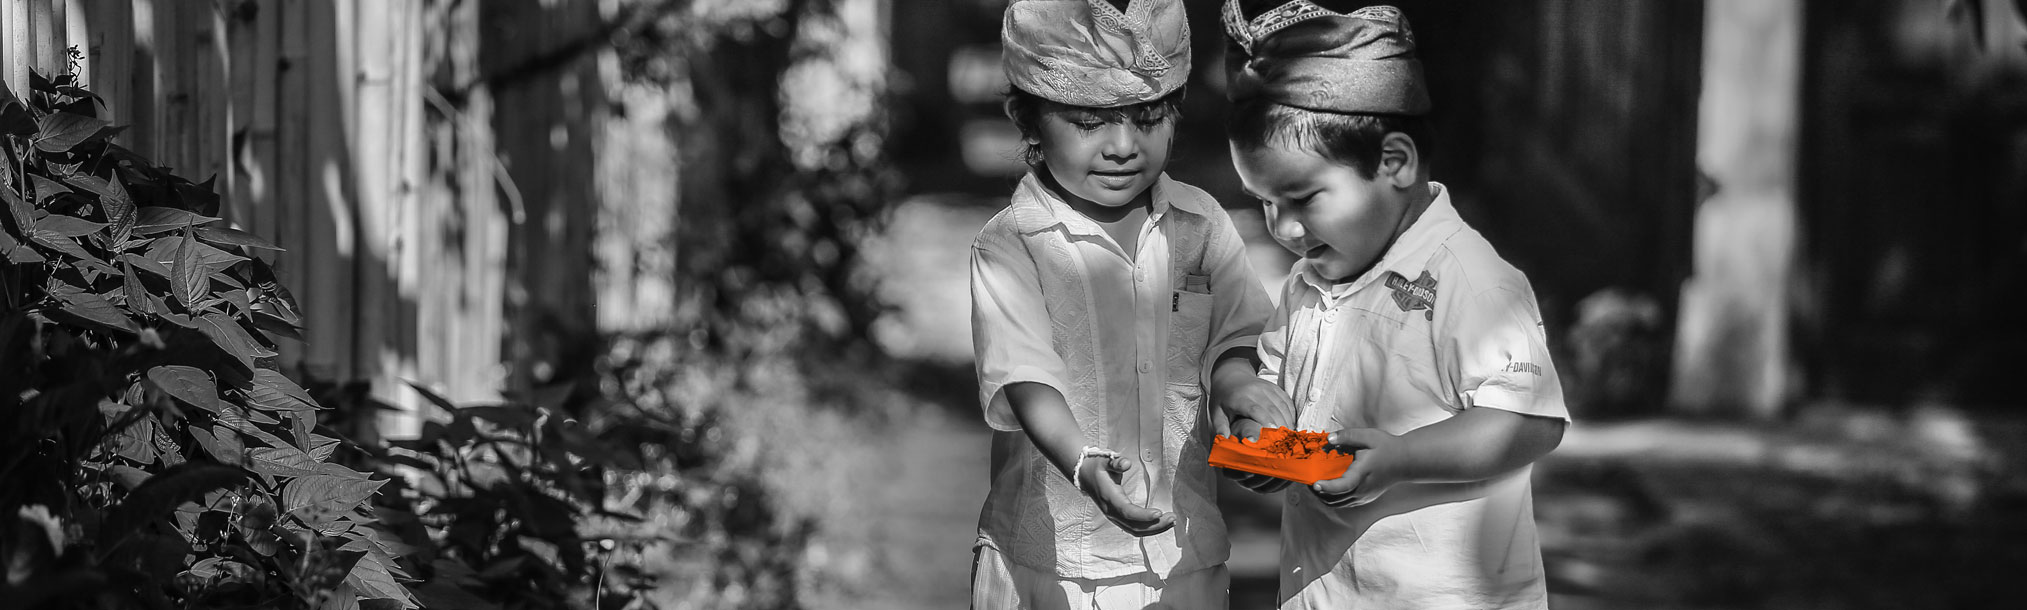 100_B_Balinese-Children-copy